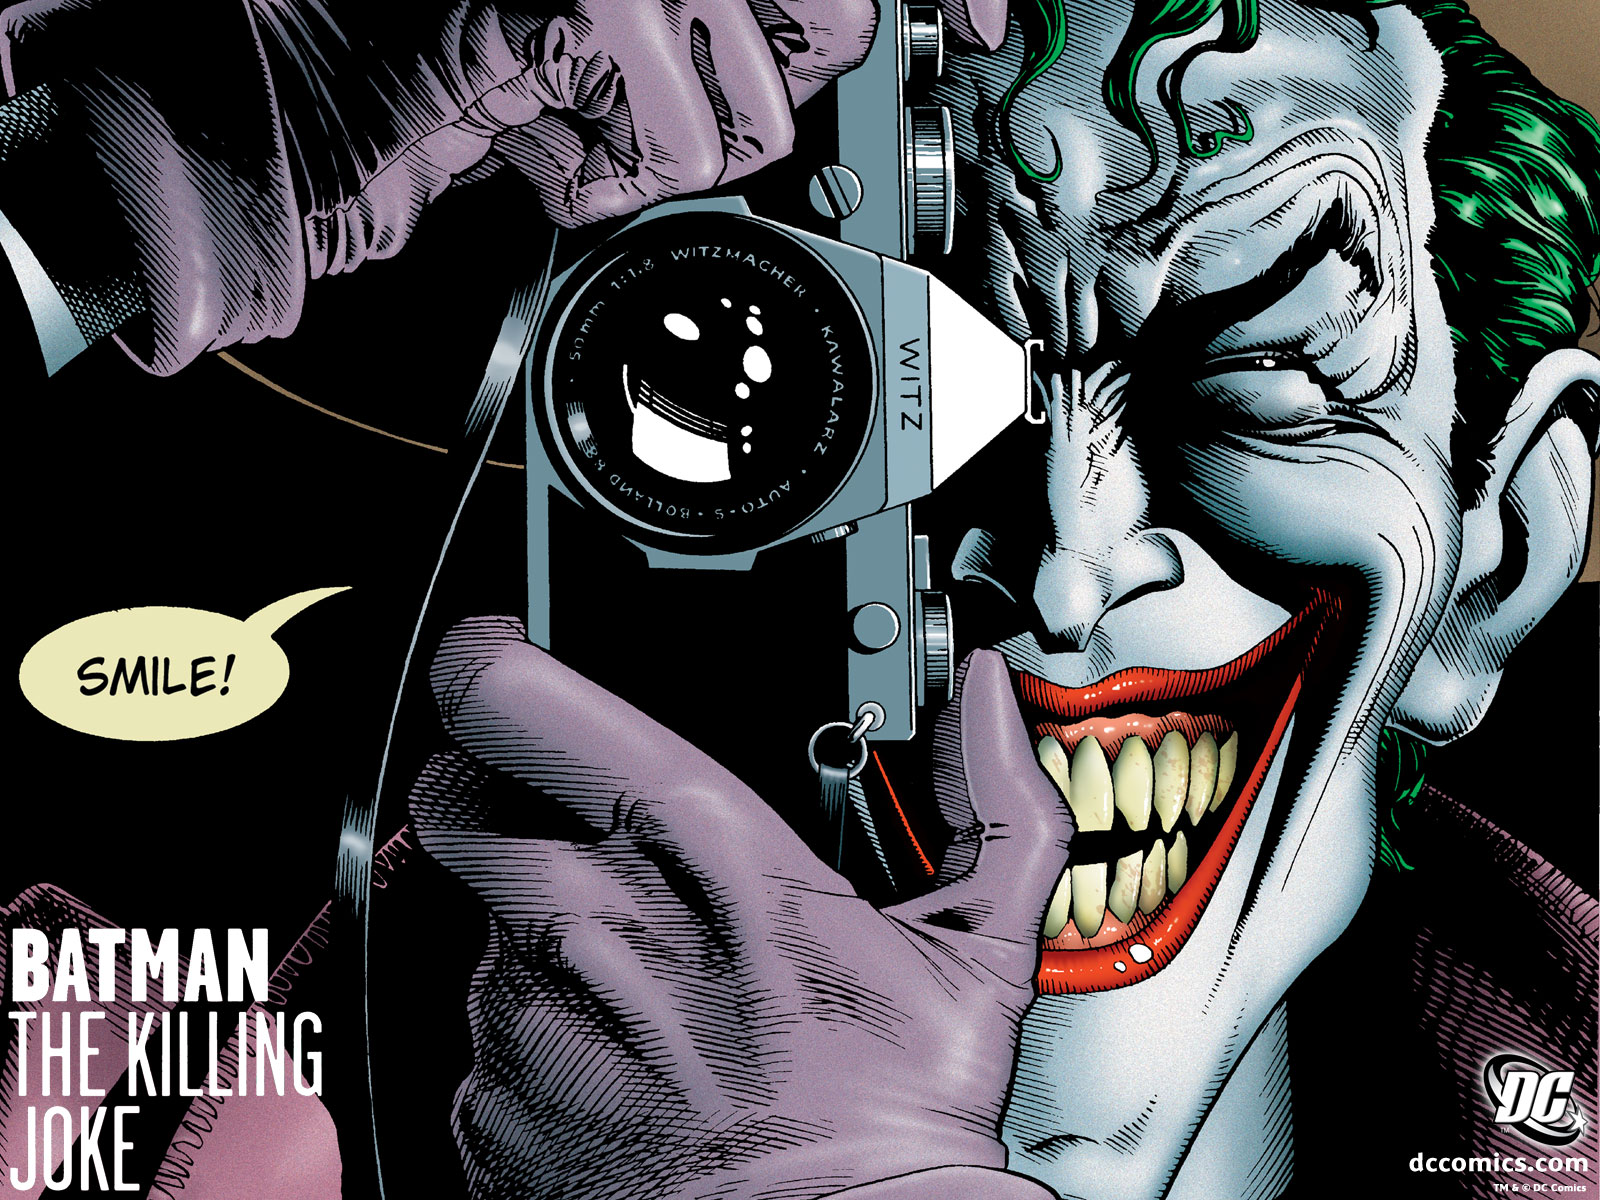 Preview Batman: The Killing Joke